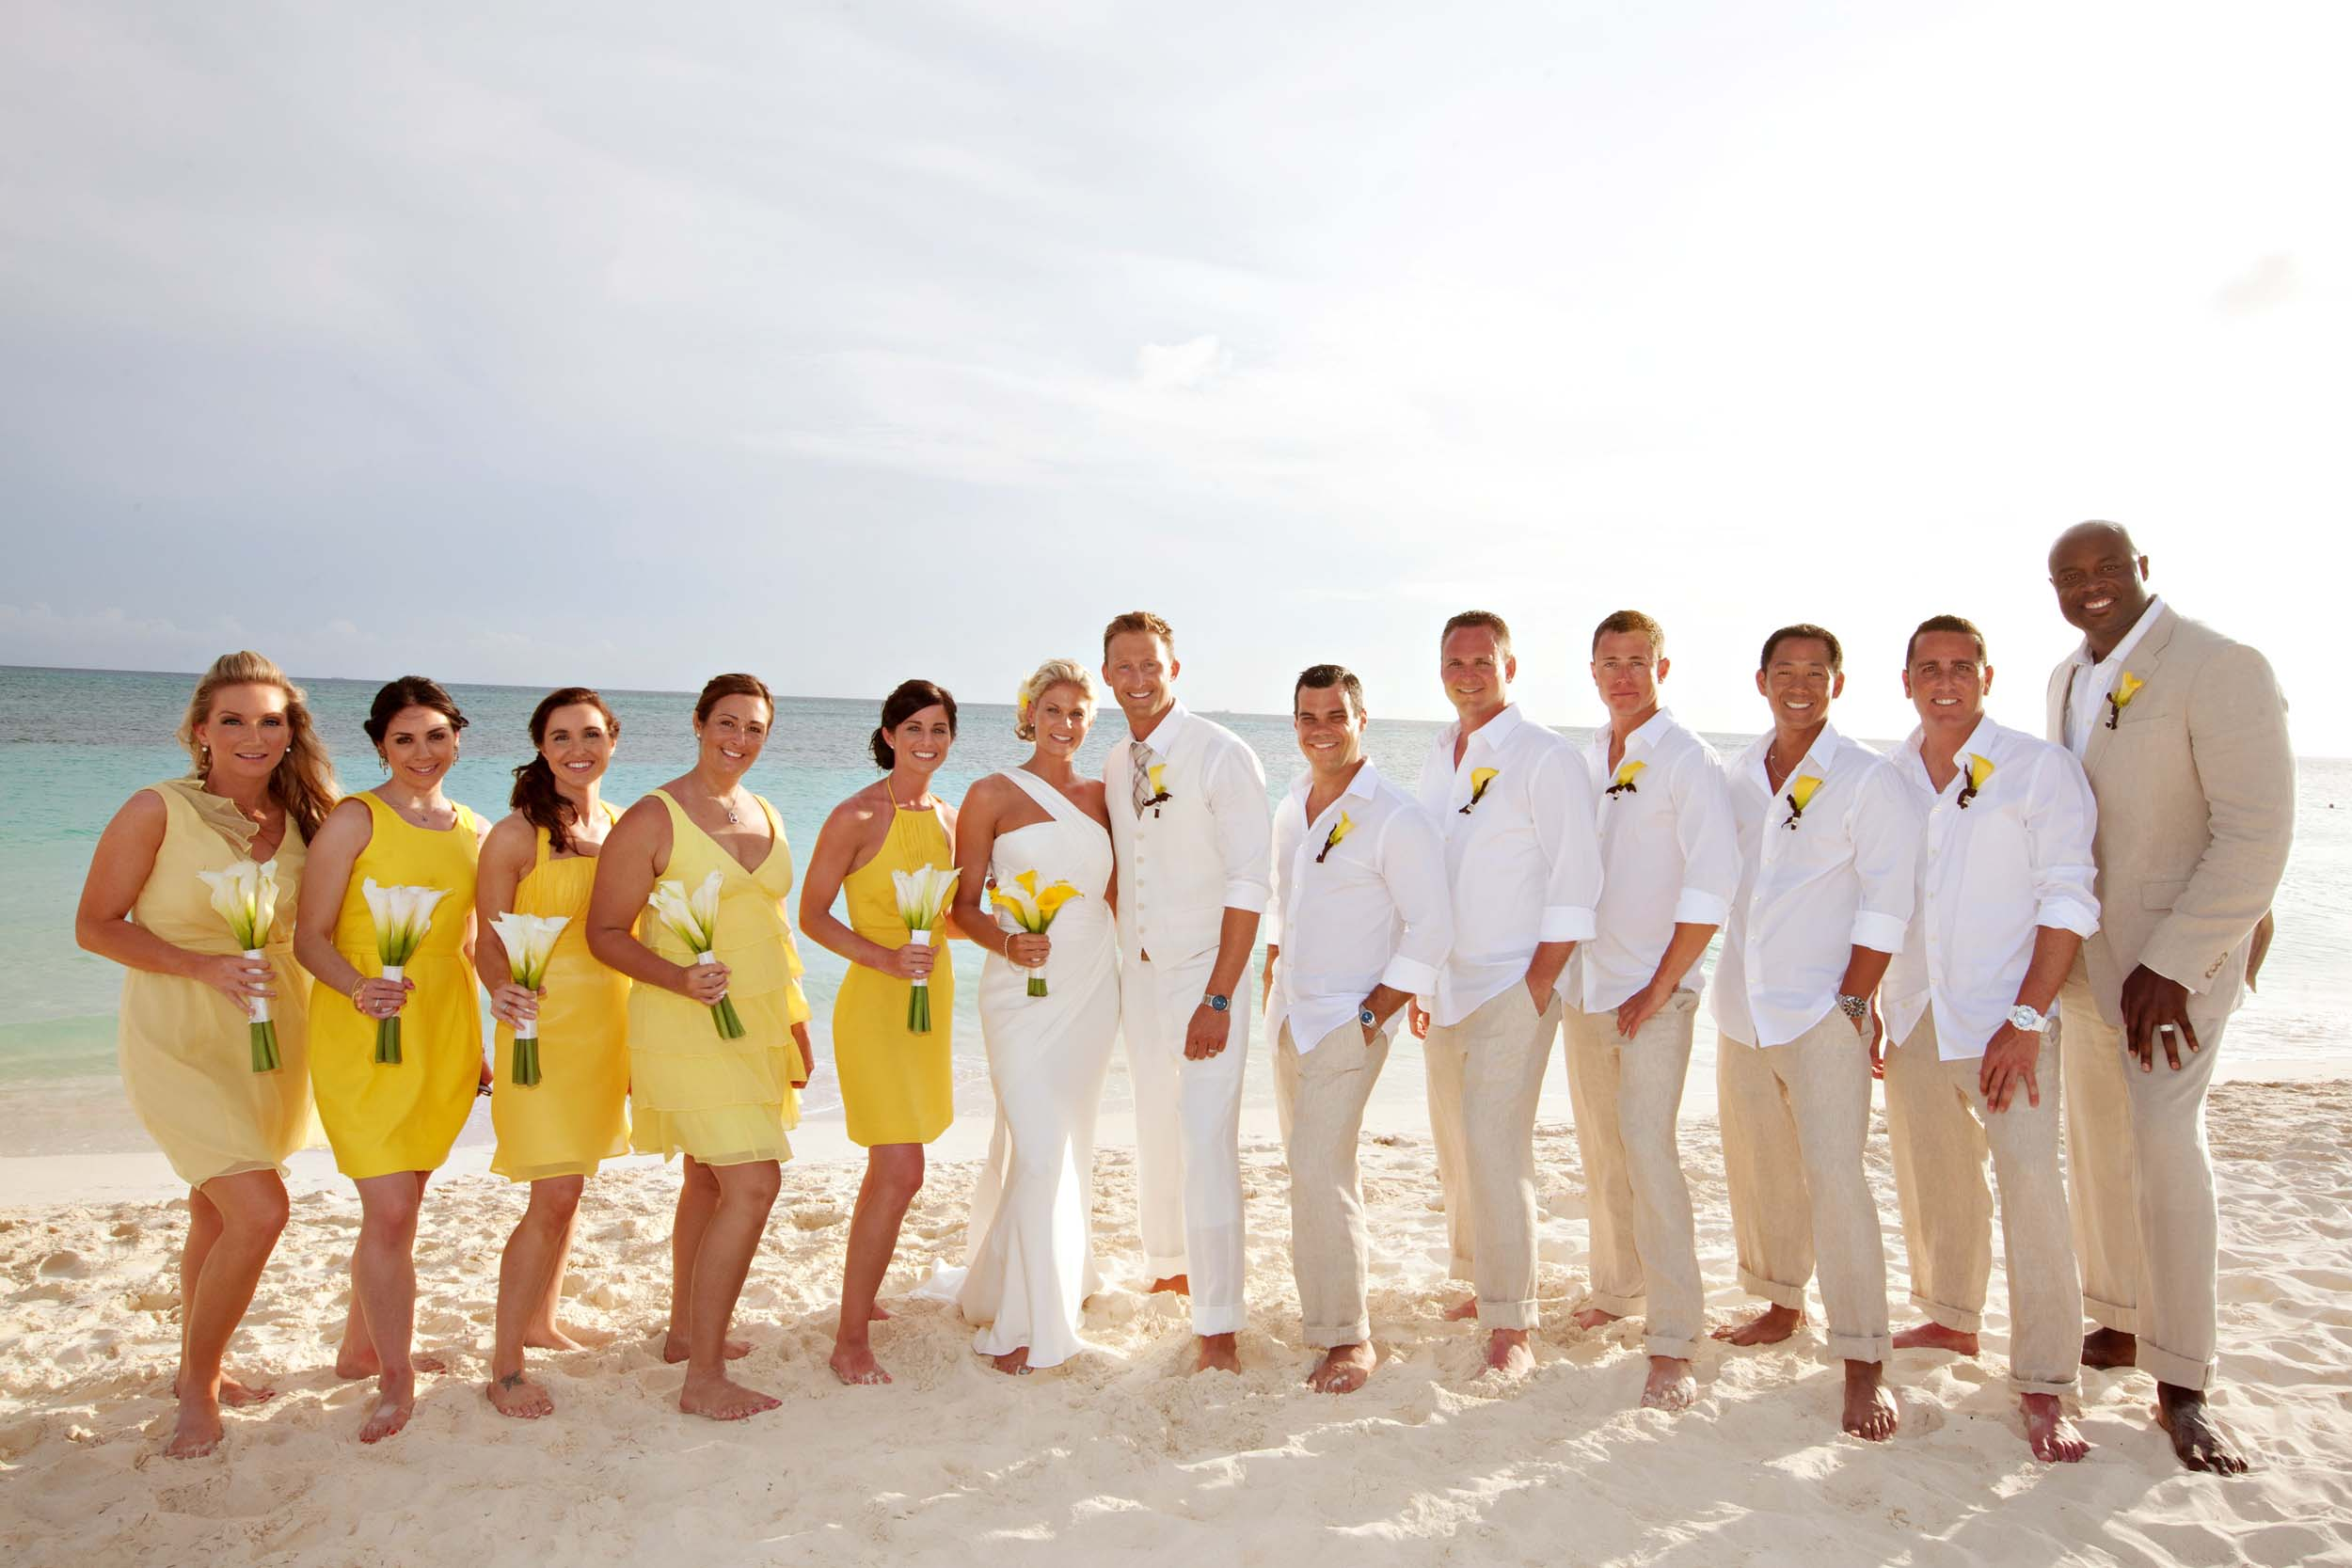 weddings-aruba-18.jpg